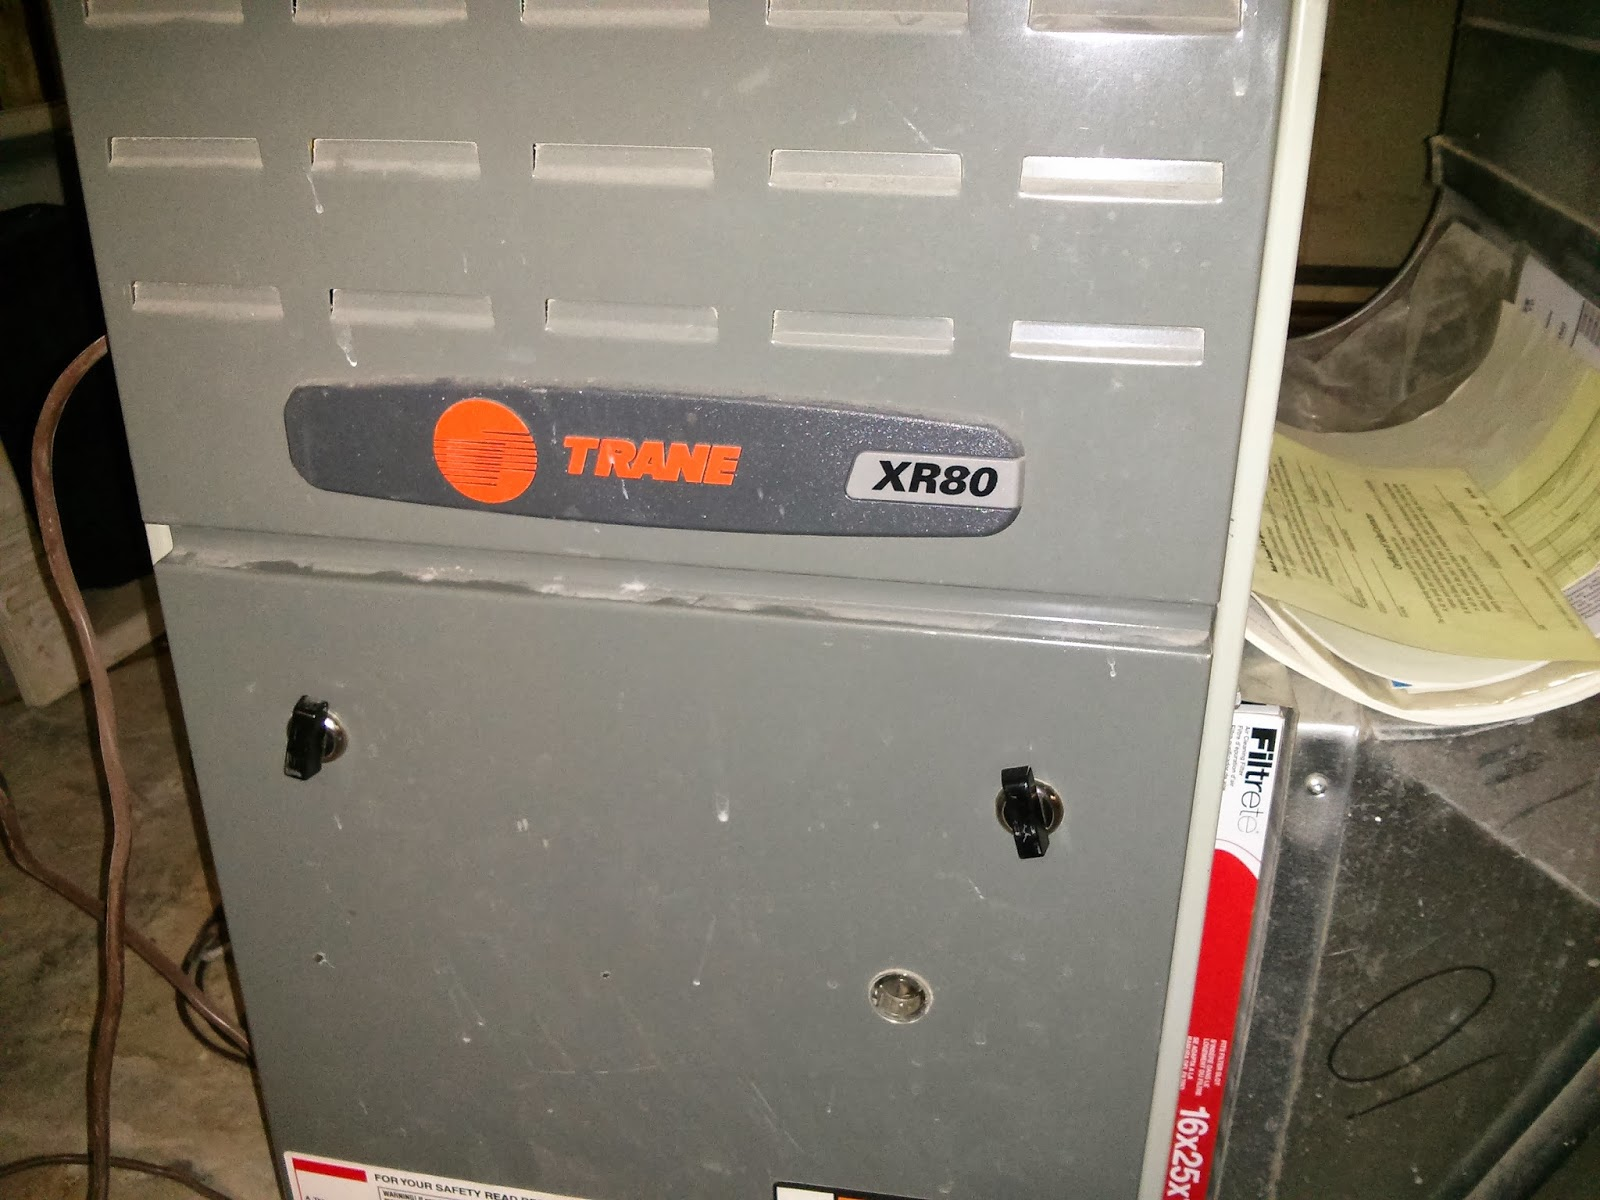 Trane Xr80 Furnace Problems Vs Nest Thermostat This House Needs Work Circuit Board Wiring The